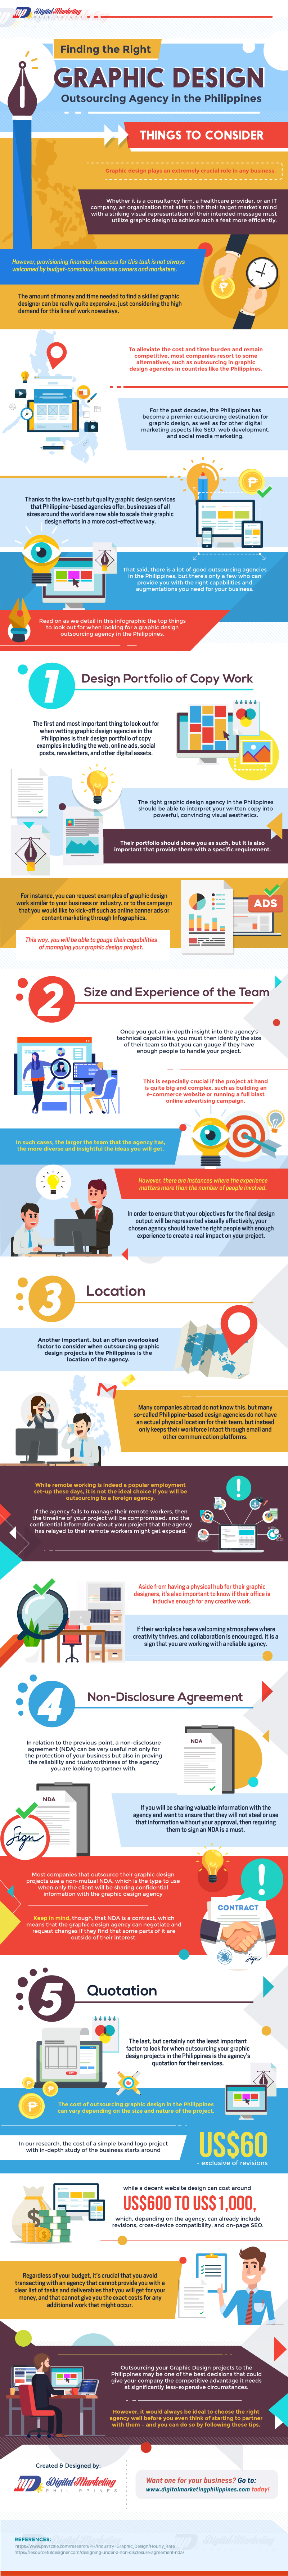 Finding the Right Graphic Design Outsourcing Agency in the Philippines #infographic